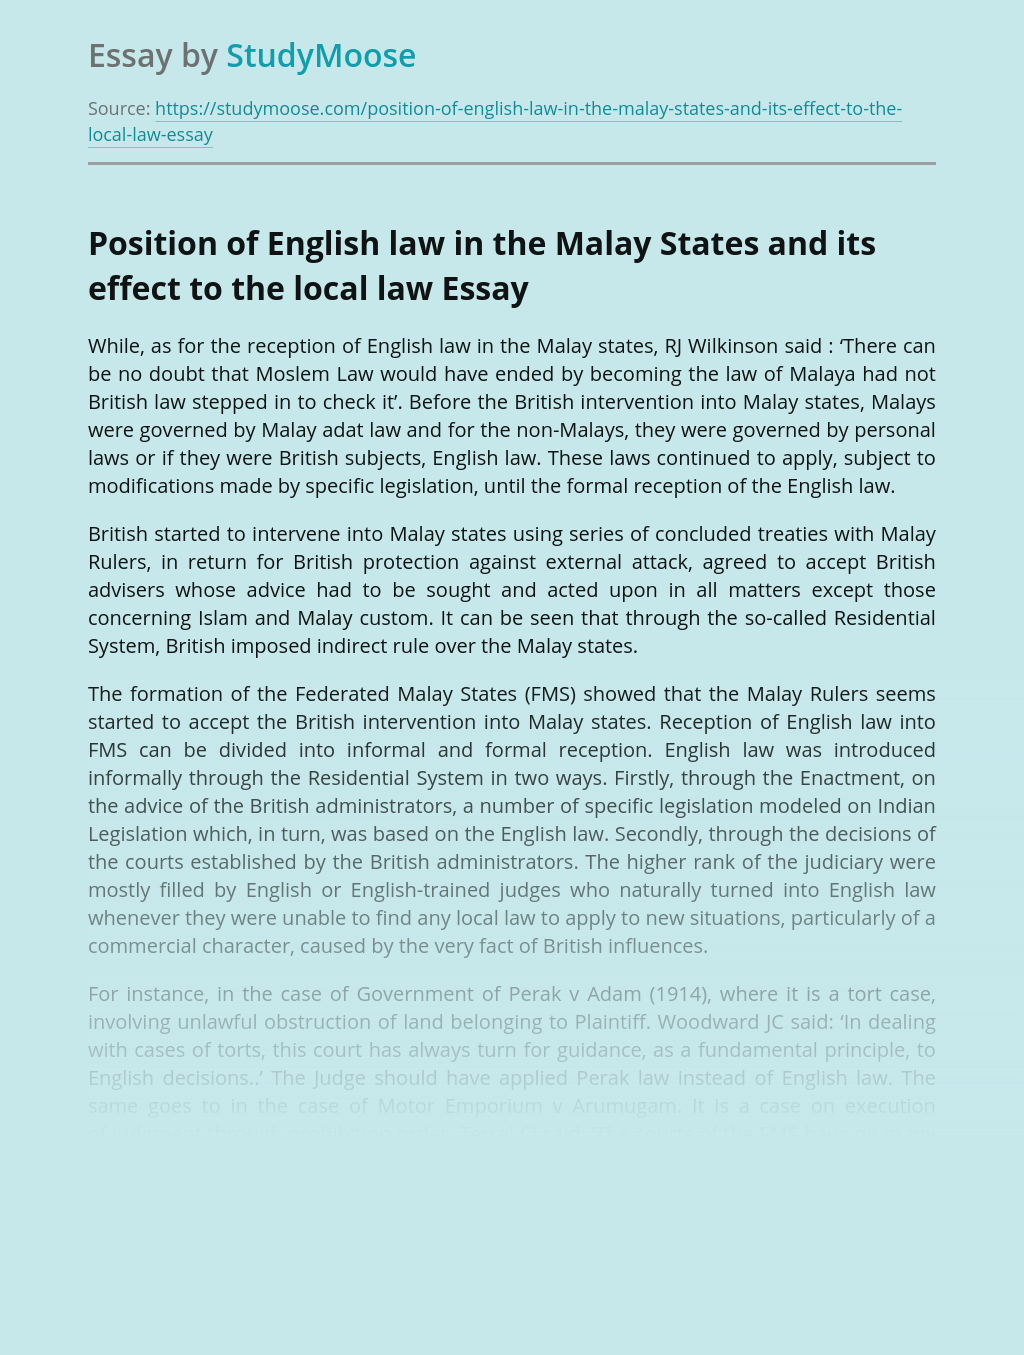 Position of English law in the Malay States and its effect to the local law